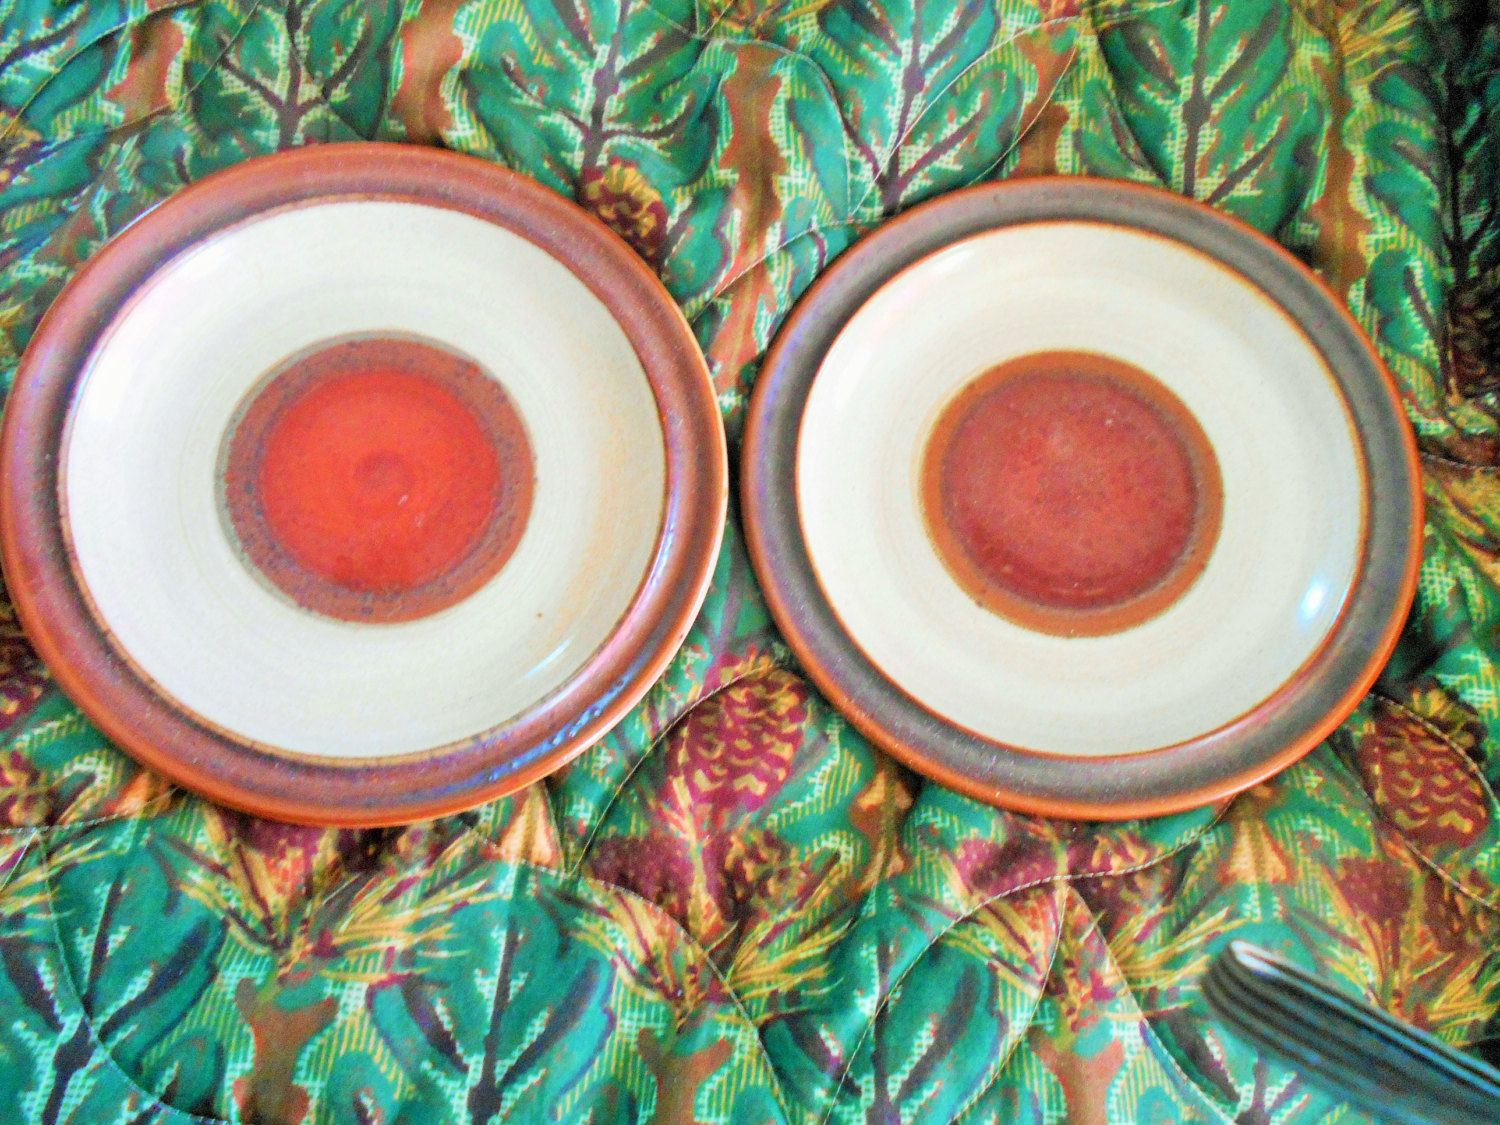 Vintage Denby Potters Wheel Lunch Salad Plates. Stoneware Potteryset of 2 by VintageVarietyFinds & Vintage Denby Potters Wheel Lunch Salad Plates. Stoneware Pottery ...